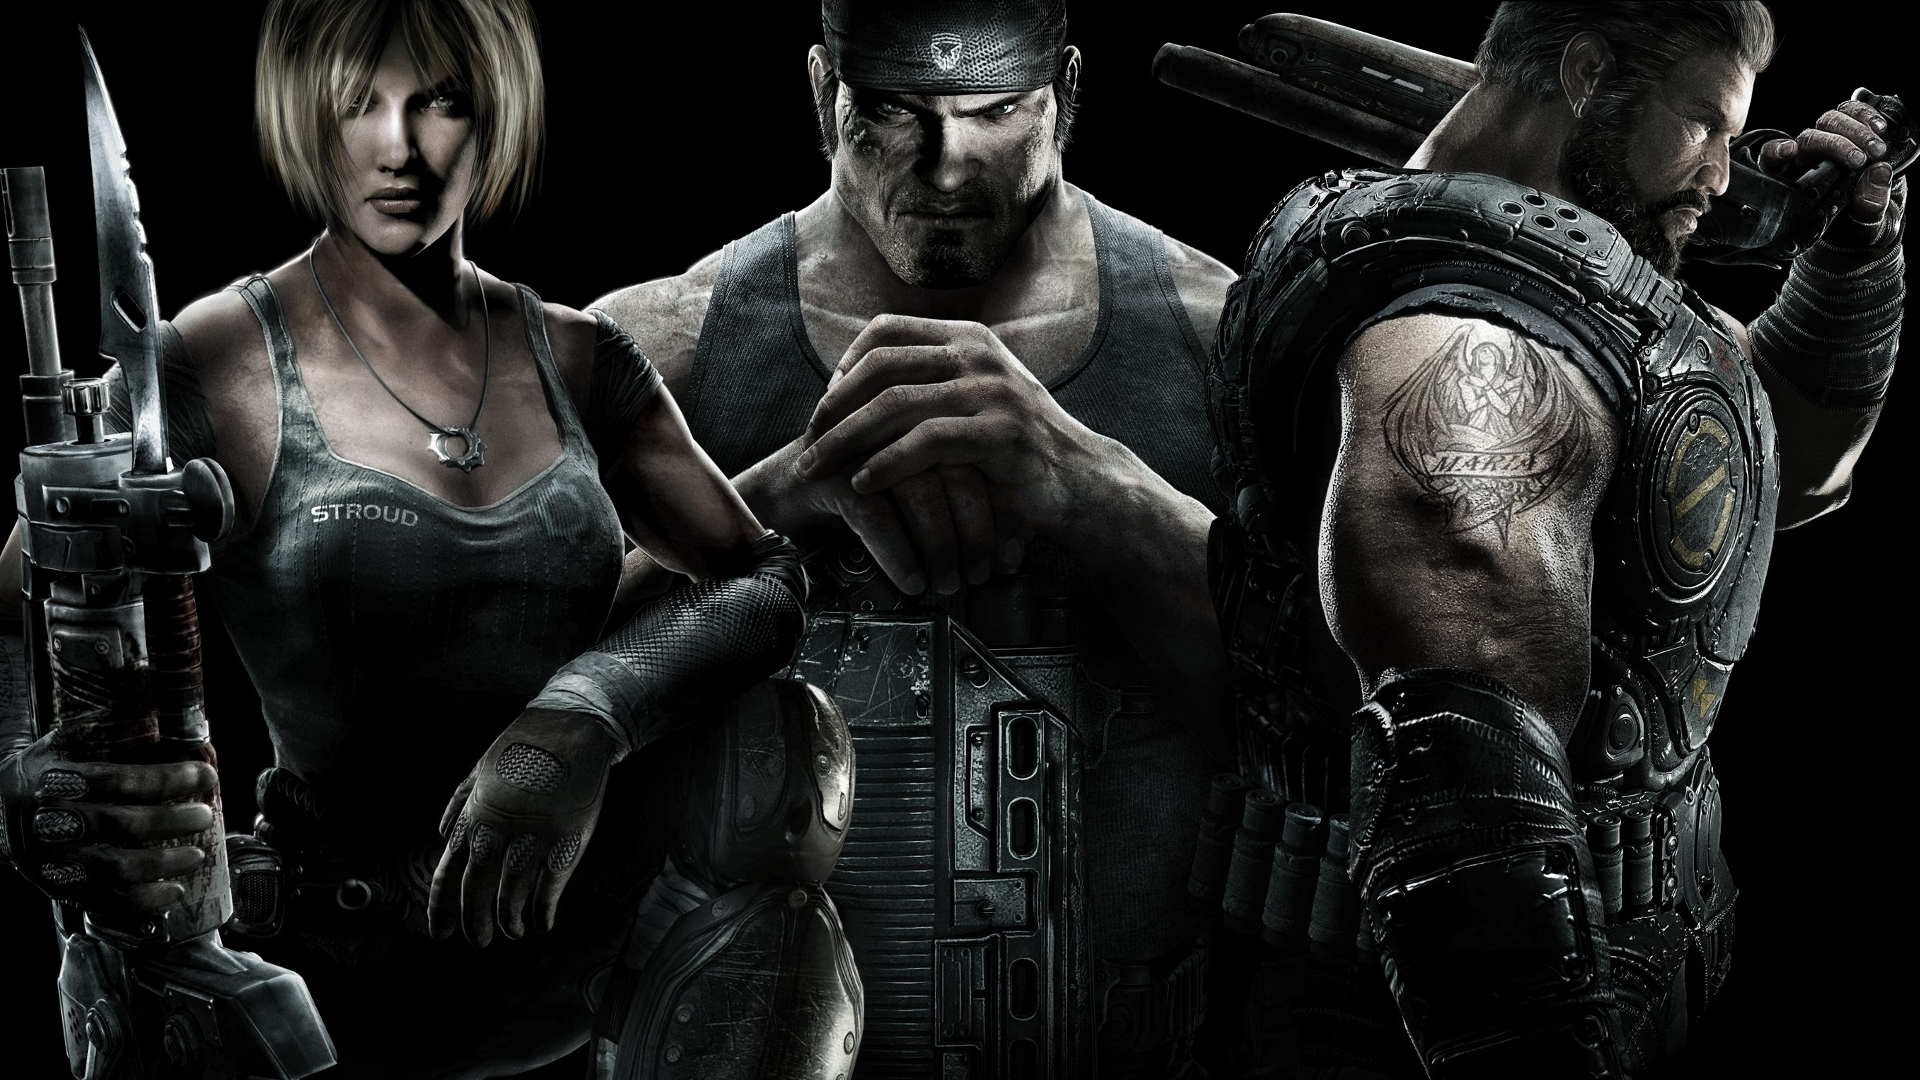 gears of war 3 wallpaper